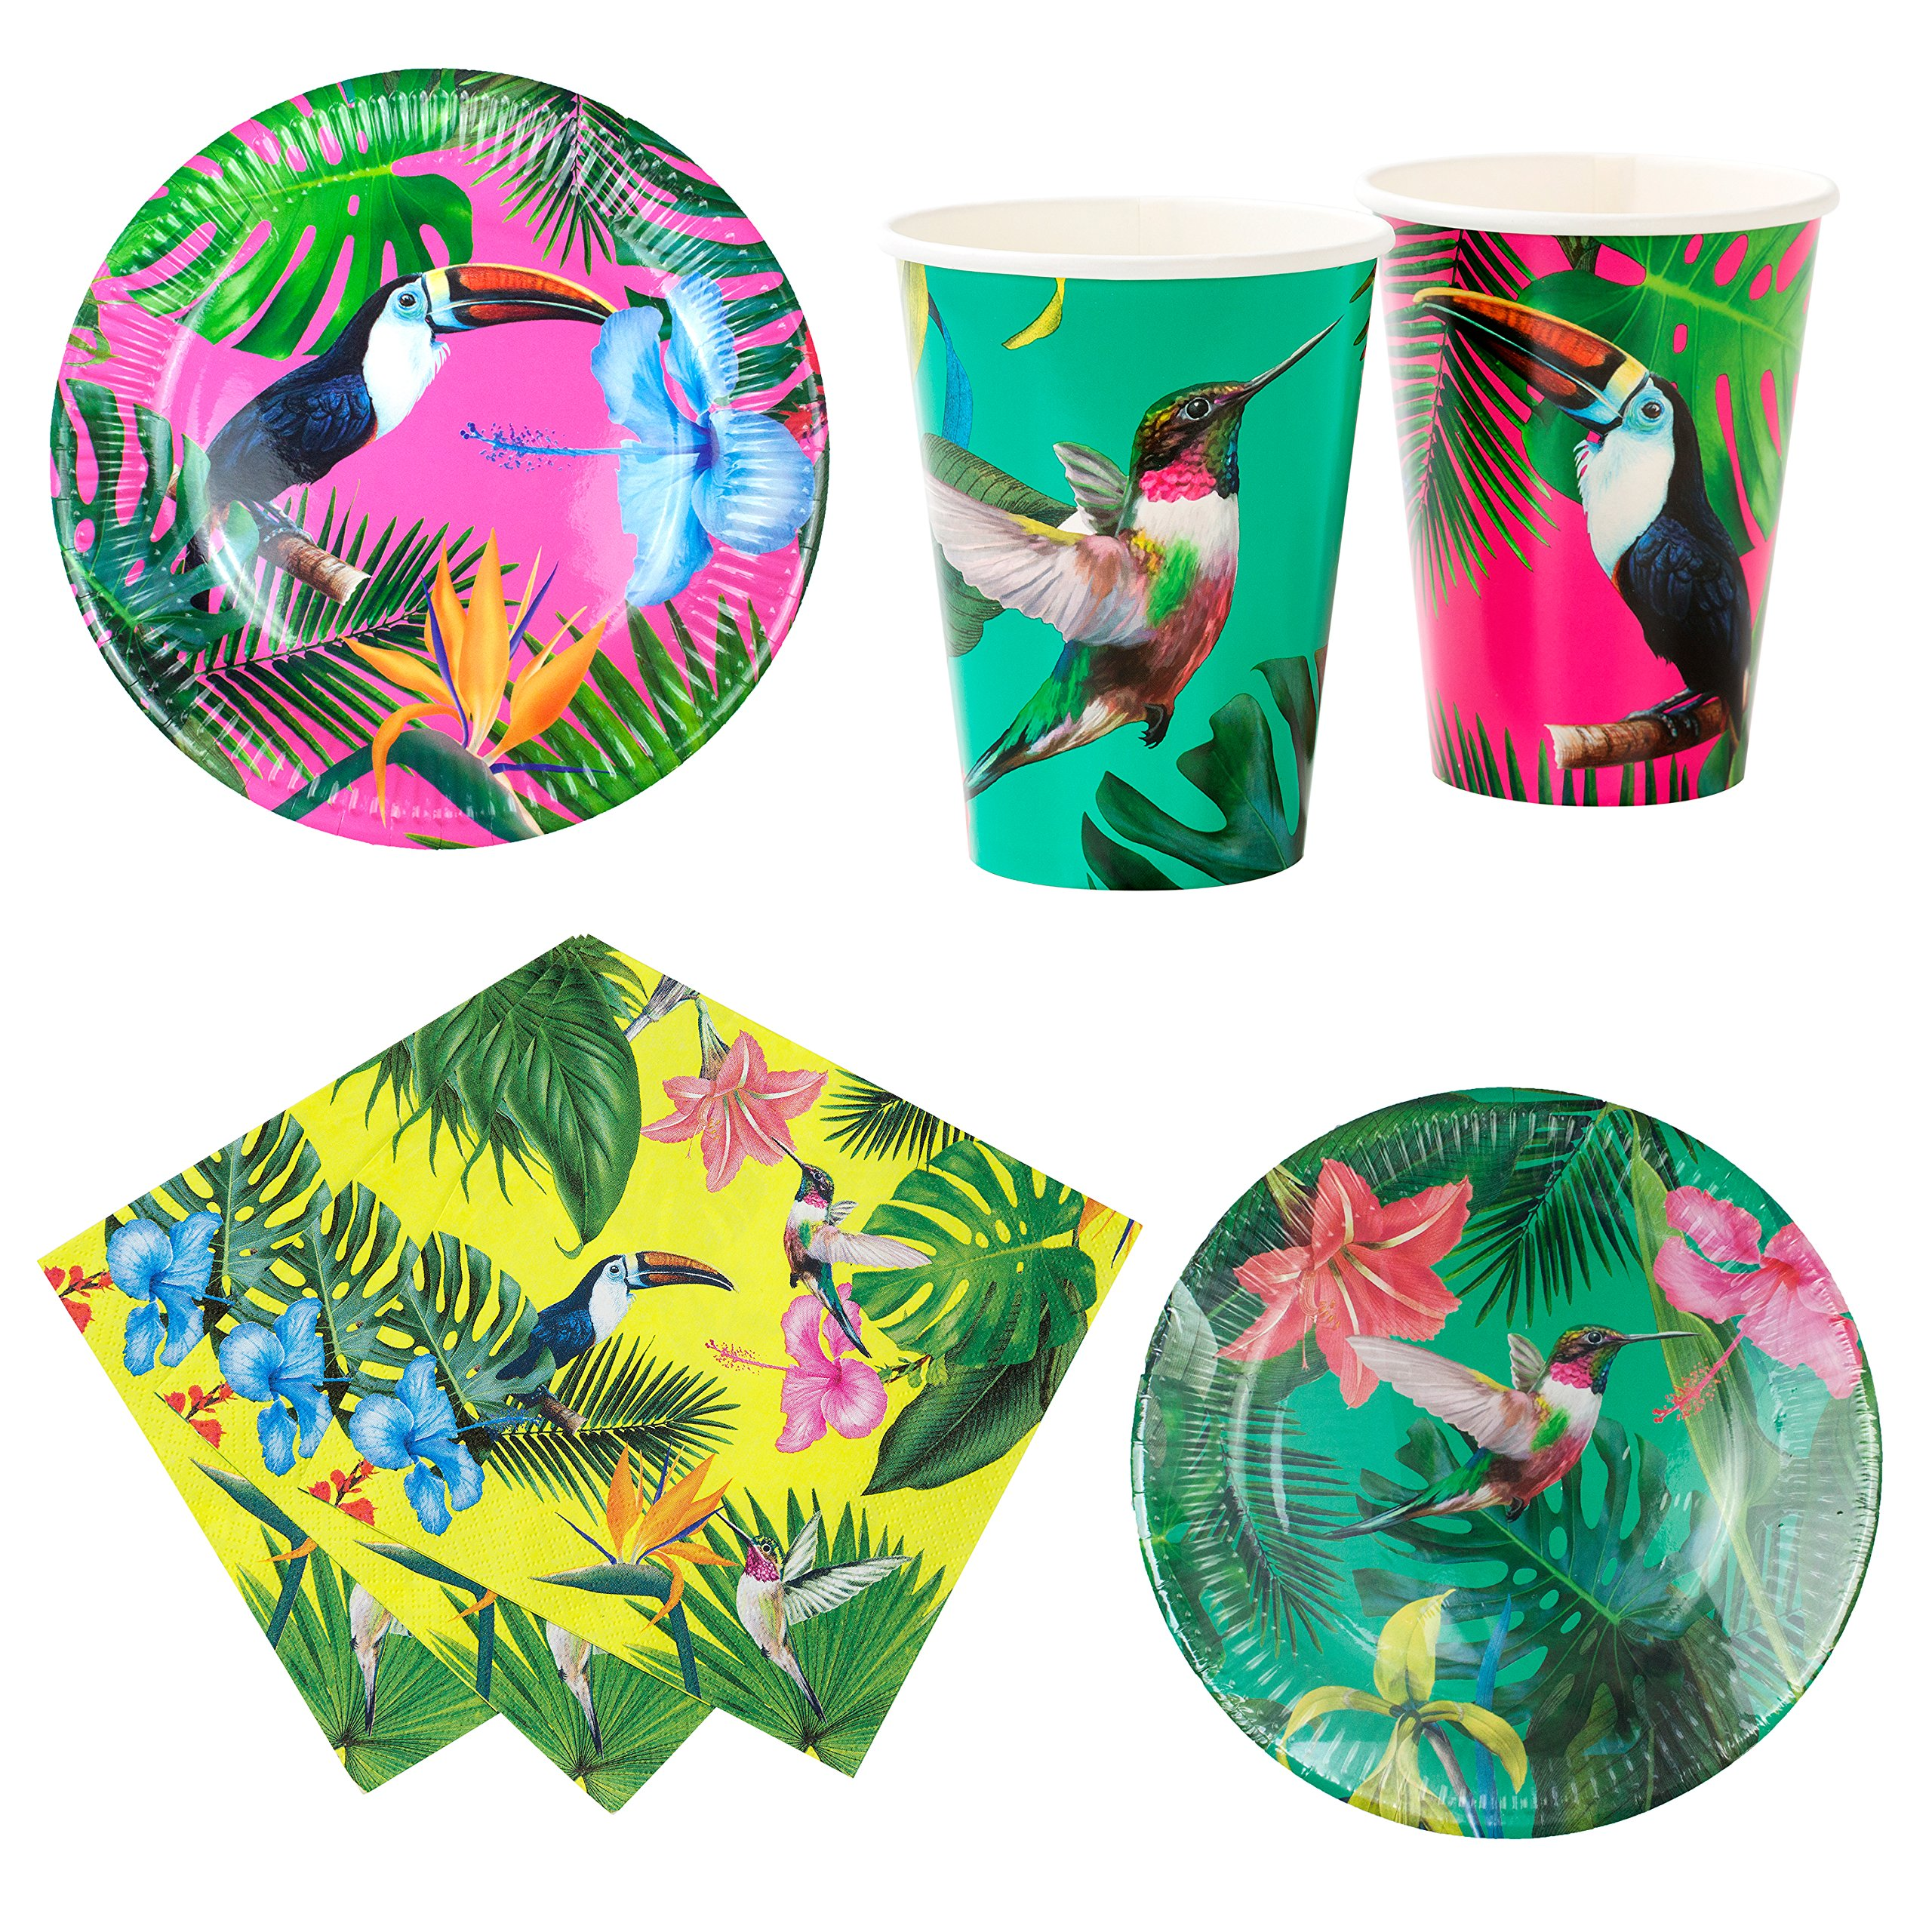 Talking Tables Tropical Fiesta Party Bundle For Birthdays, BBQ, Pool Parties & Other Celebrations | Bright Paper Plates, Napkins & Cups